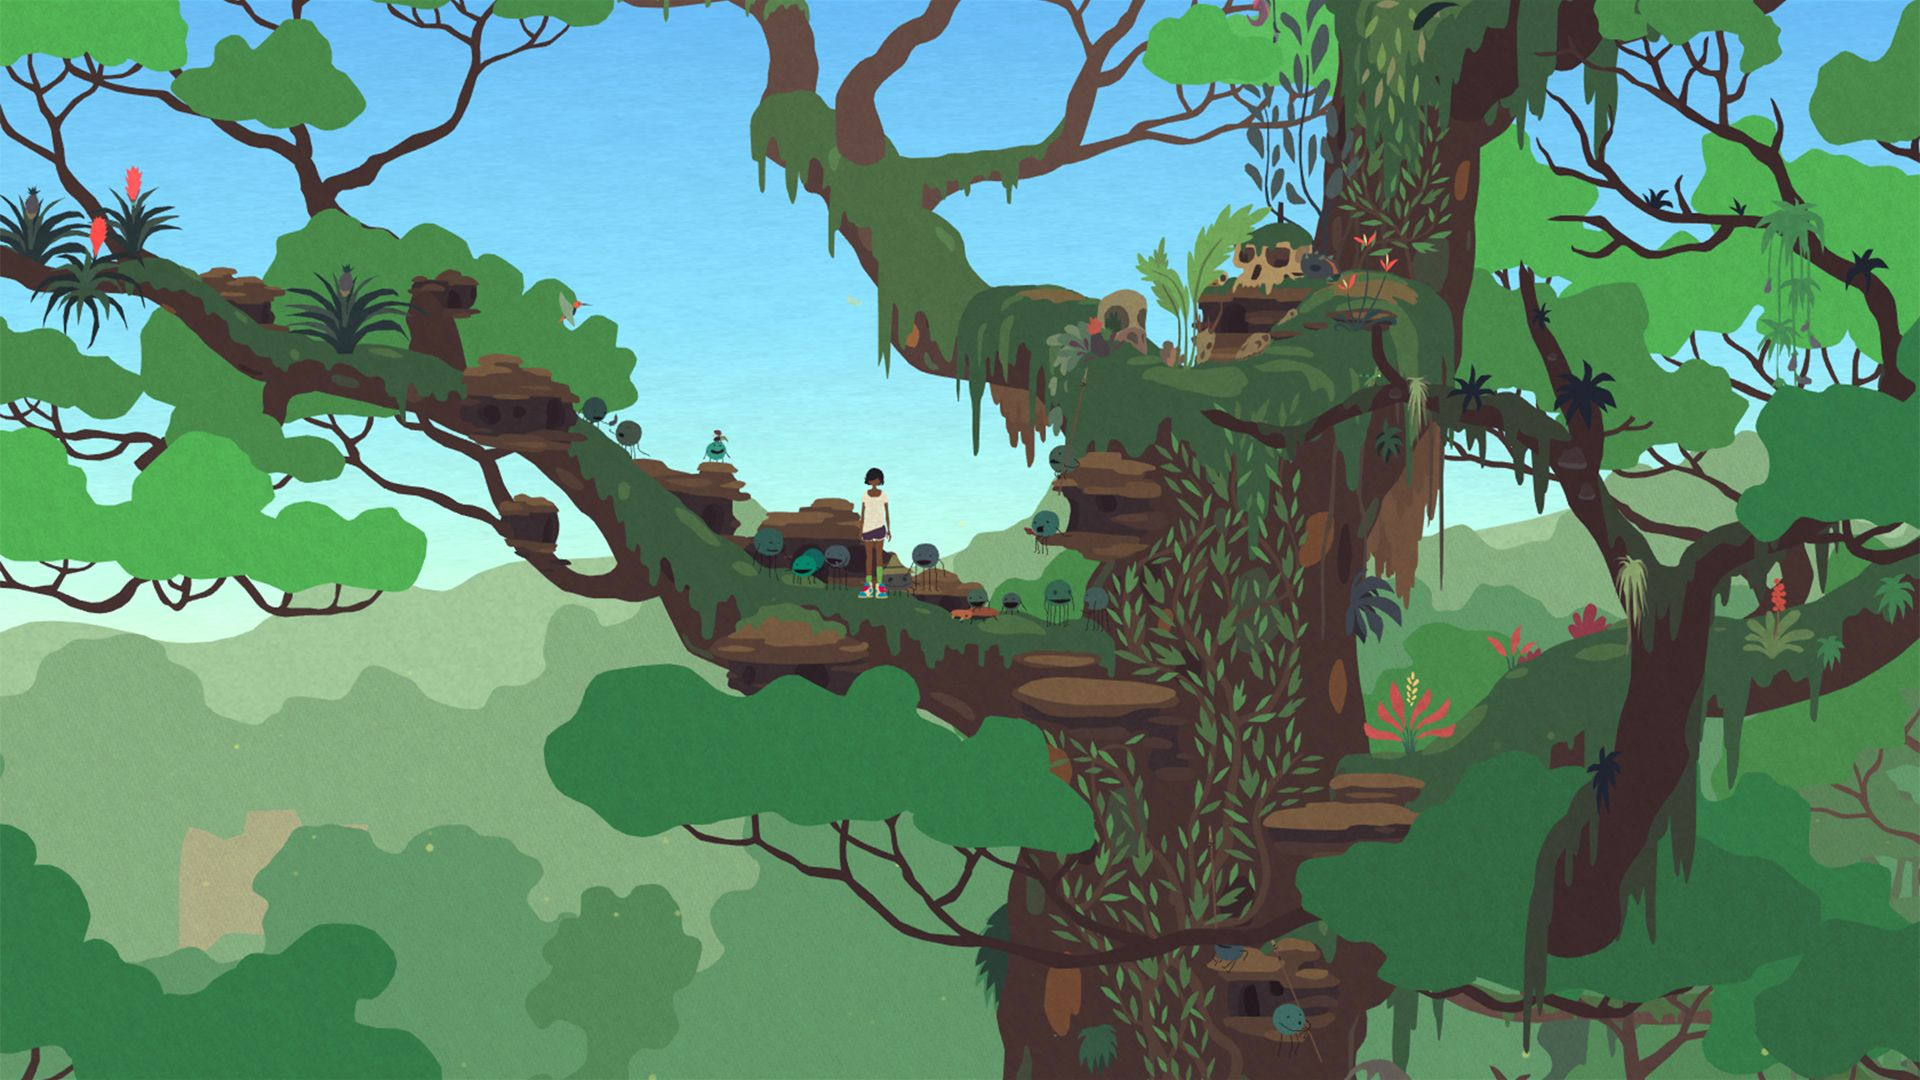 A screenshot from Mutazione which shows Kai - in purple shorts, white tee, with brown skin, and short black hair - standing in a lush green tree top with a number of small round creatures.